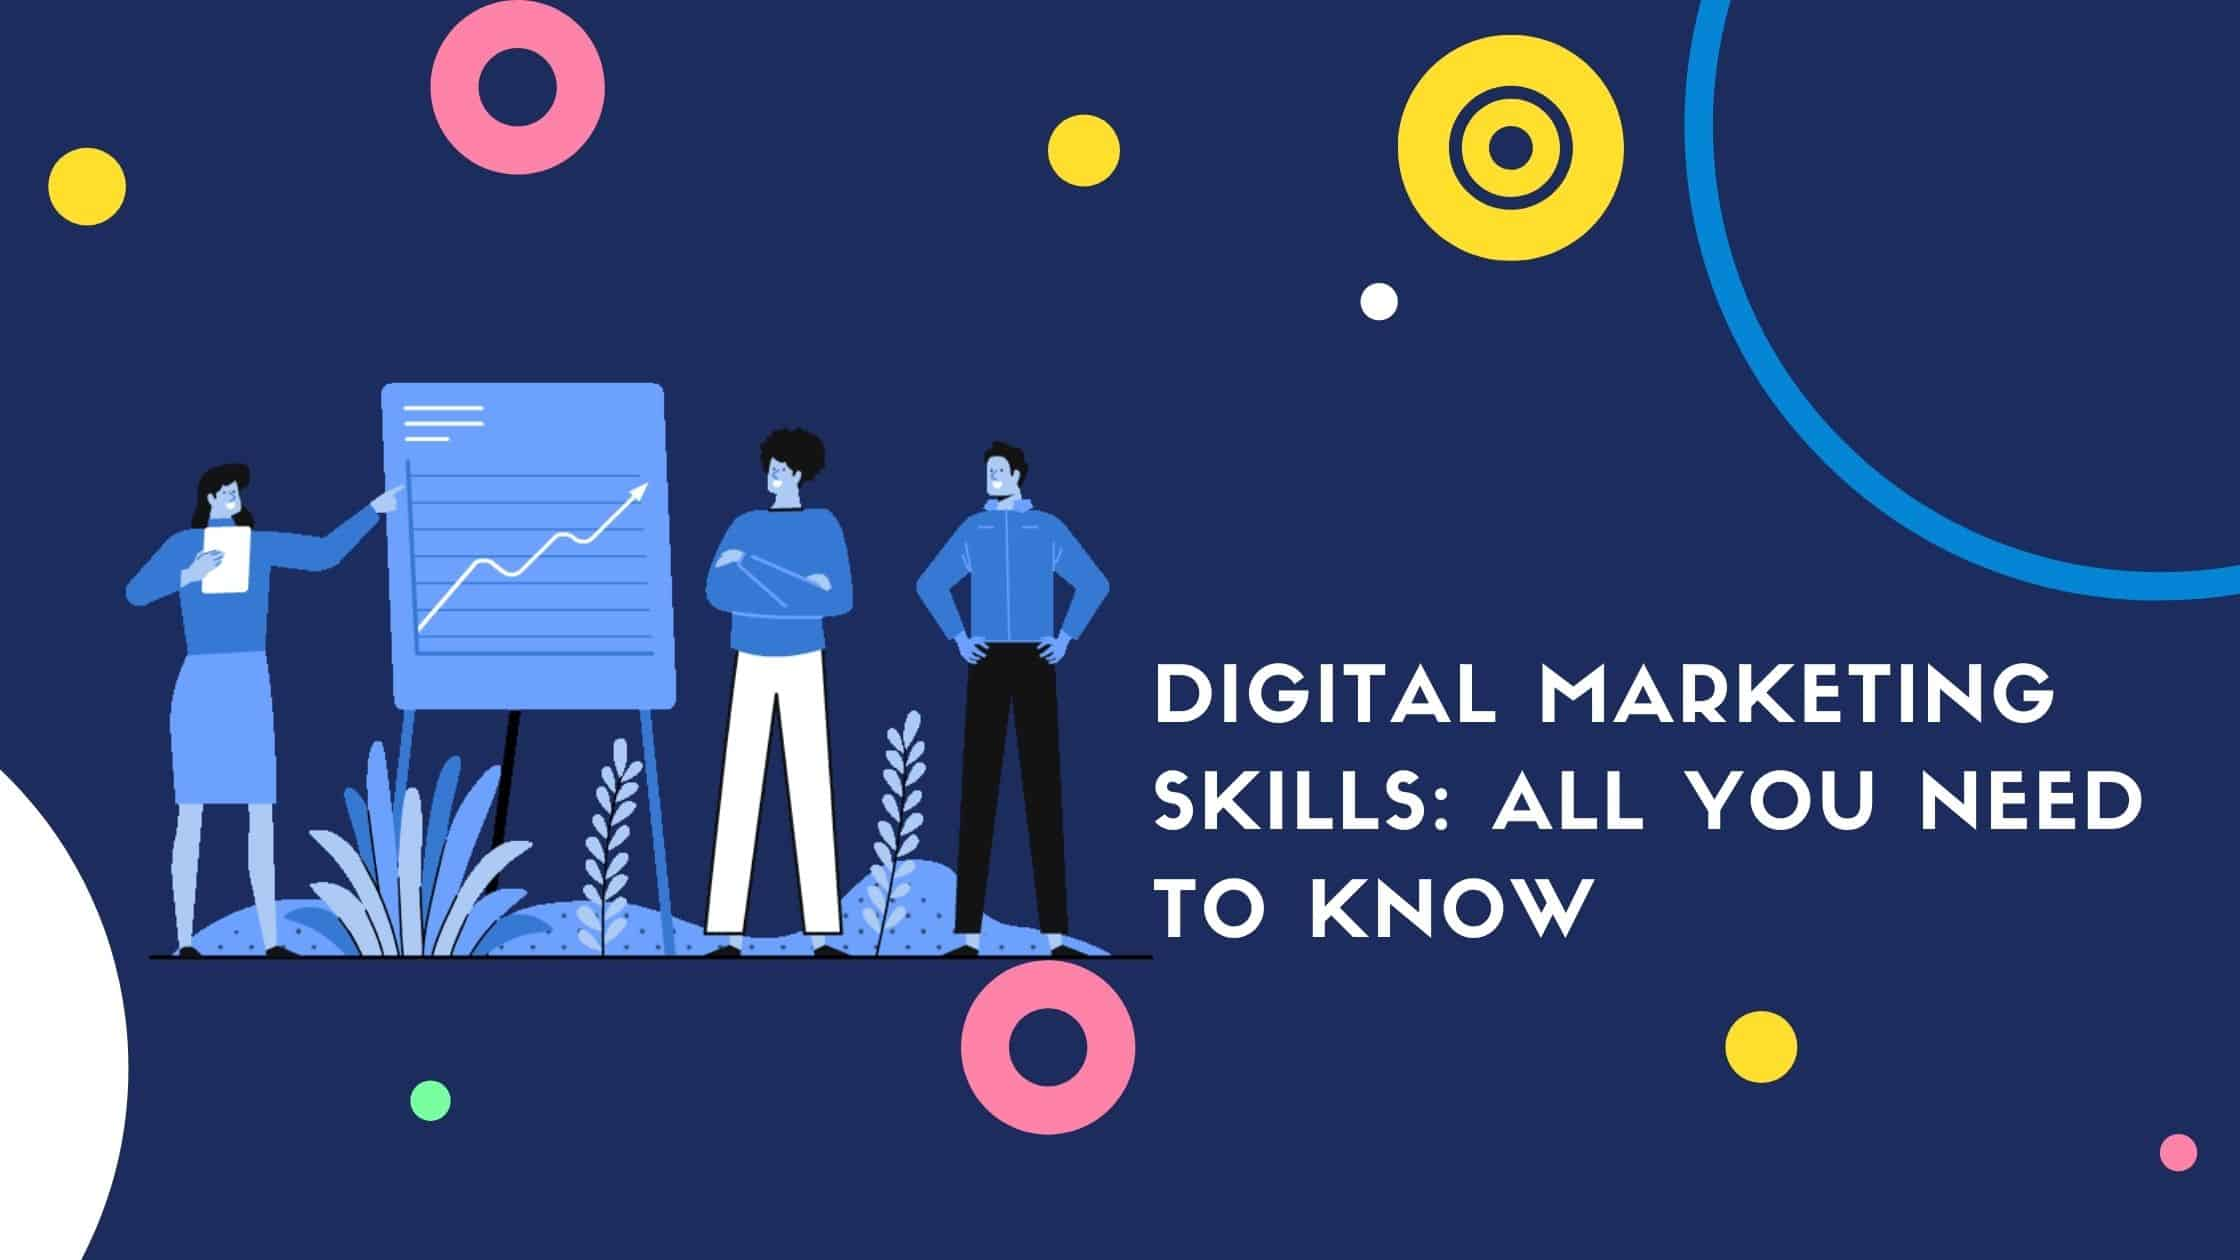 Digital Marketing Skills: All You Need to Know